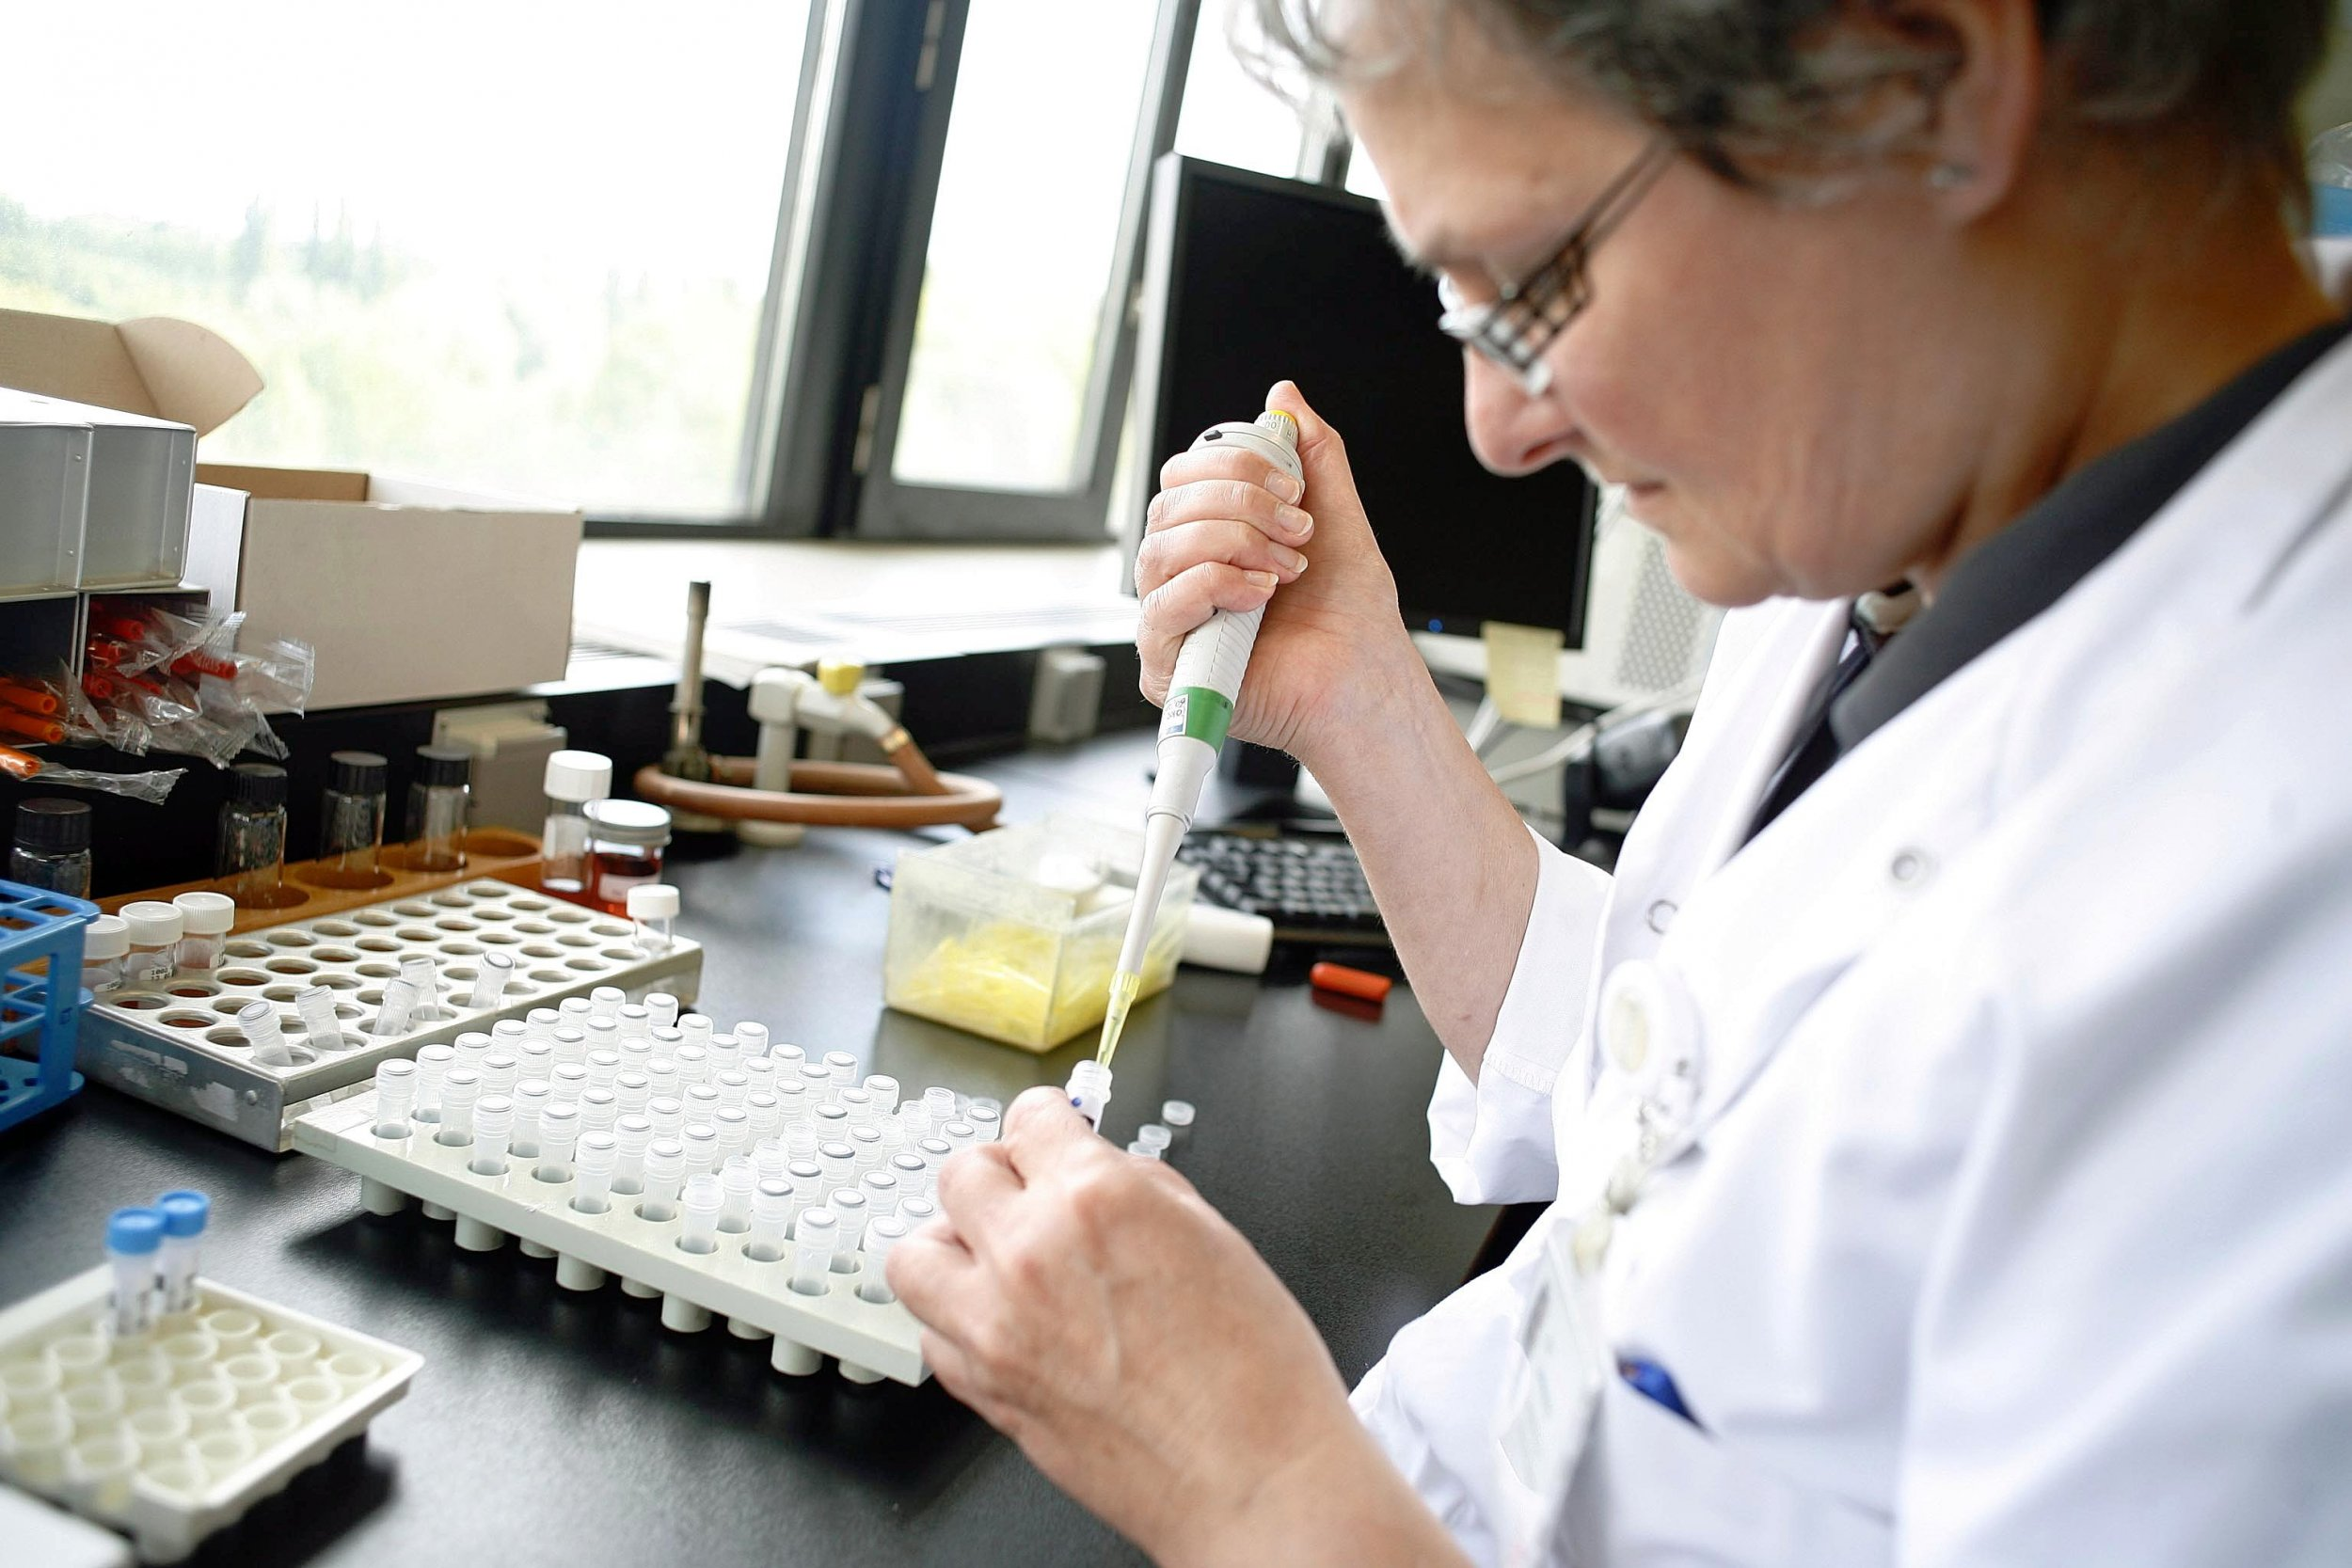 A researcher at a microbiology lab